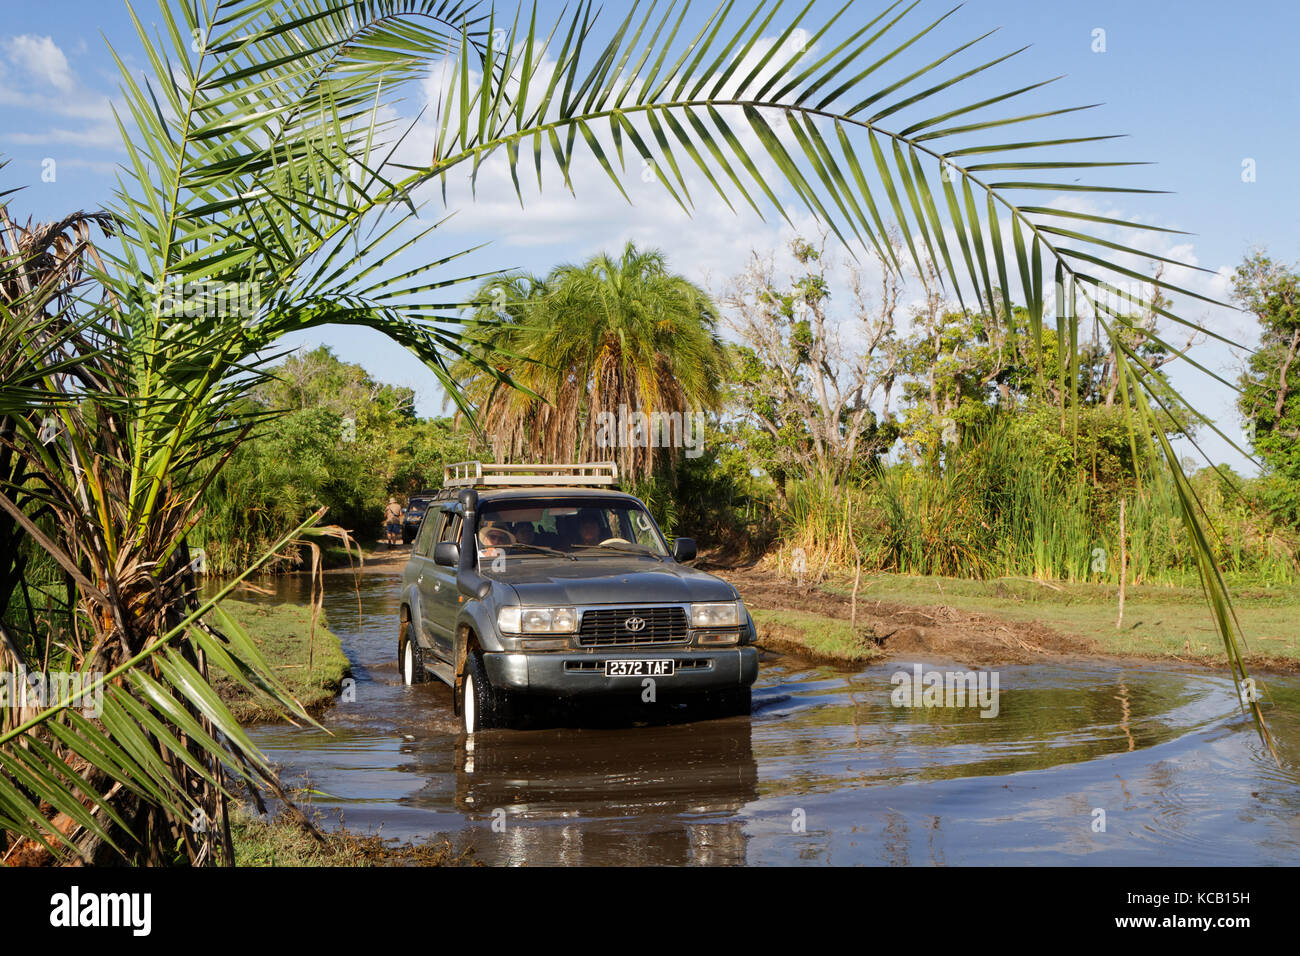 BELO-SUR-MER, MADAGASCAR, November 25, 2015 : A journey on the track joining Belo-sur-mer from the nearest town - Stock Image